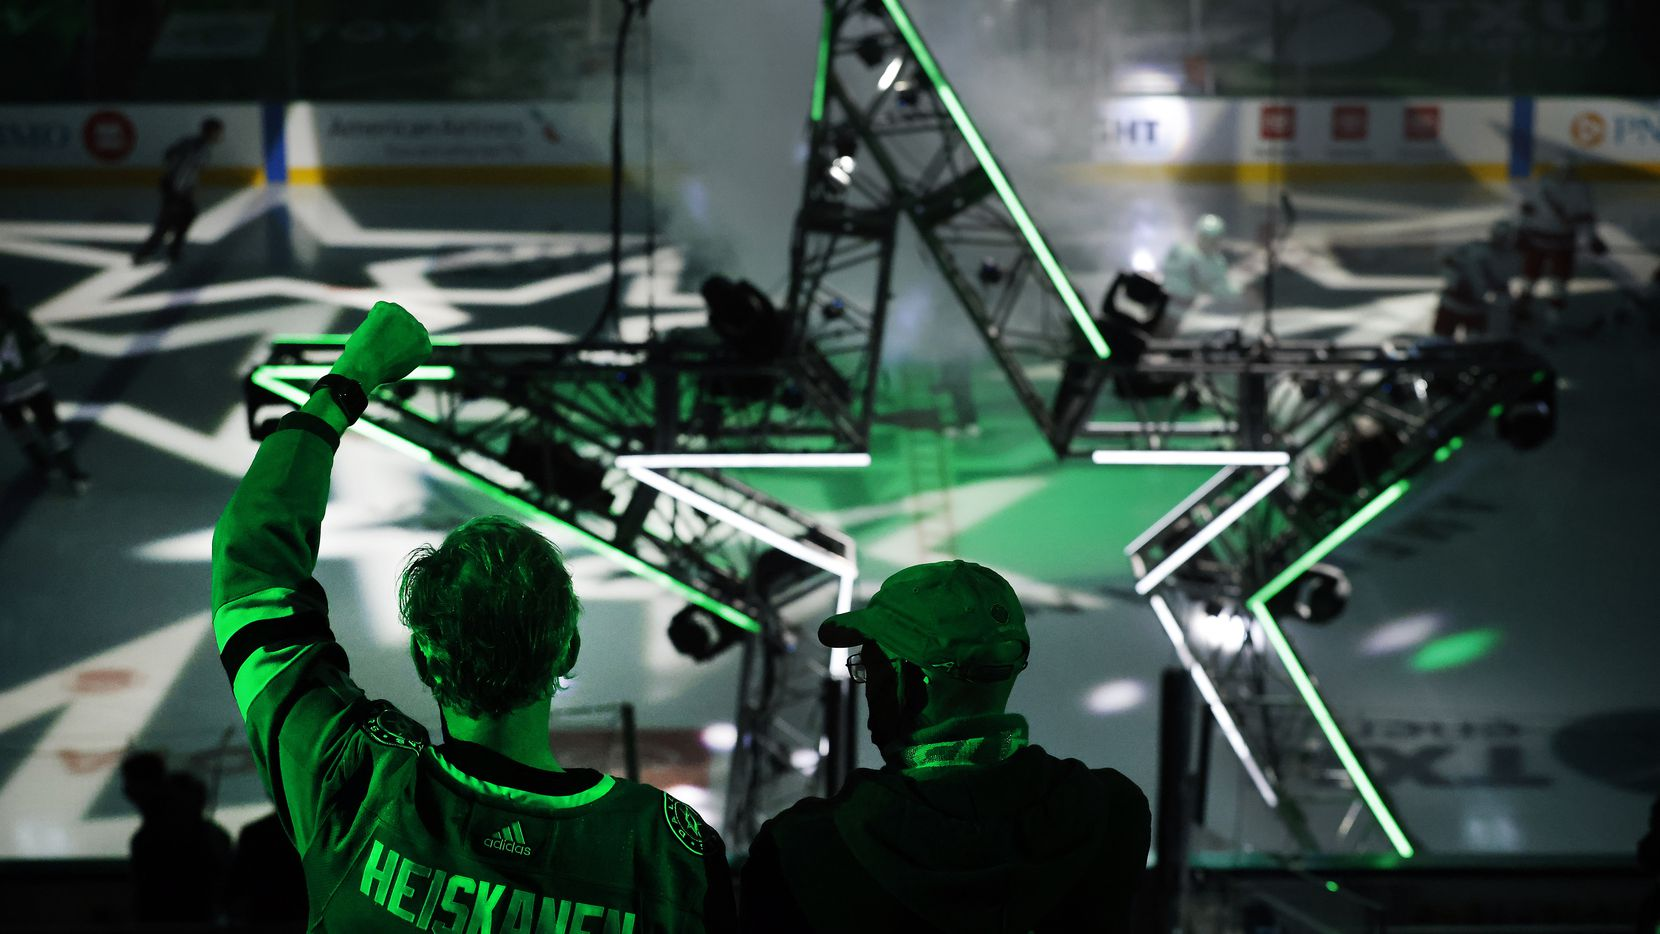 Dallas Stars fans cheer their players as they're introduced during the last home game of the regular season at the American Airlines Center in Dallas, Tuesday, April 27, 2021. The Stars were facing the Carolina Hurricanes.